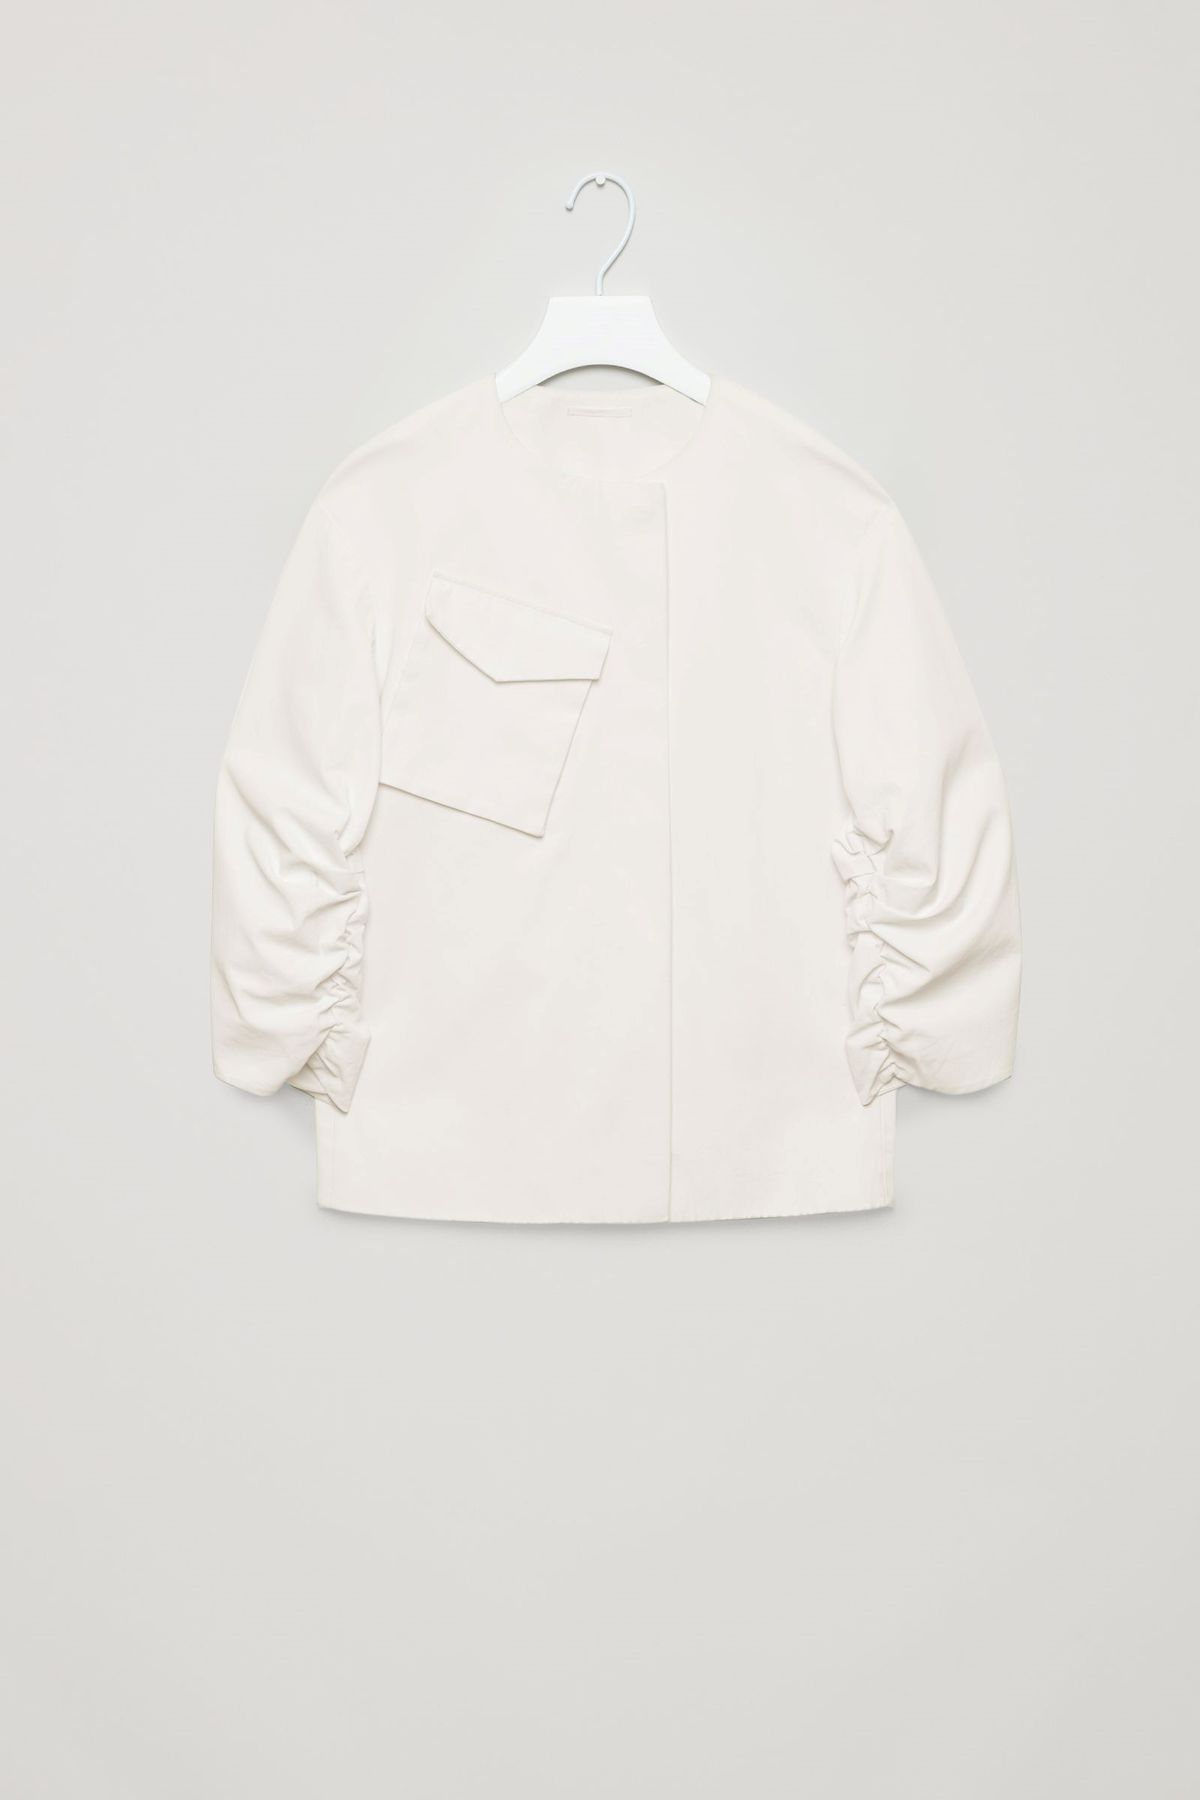 A jacket with ruched sleeves.